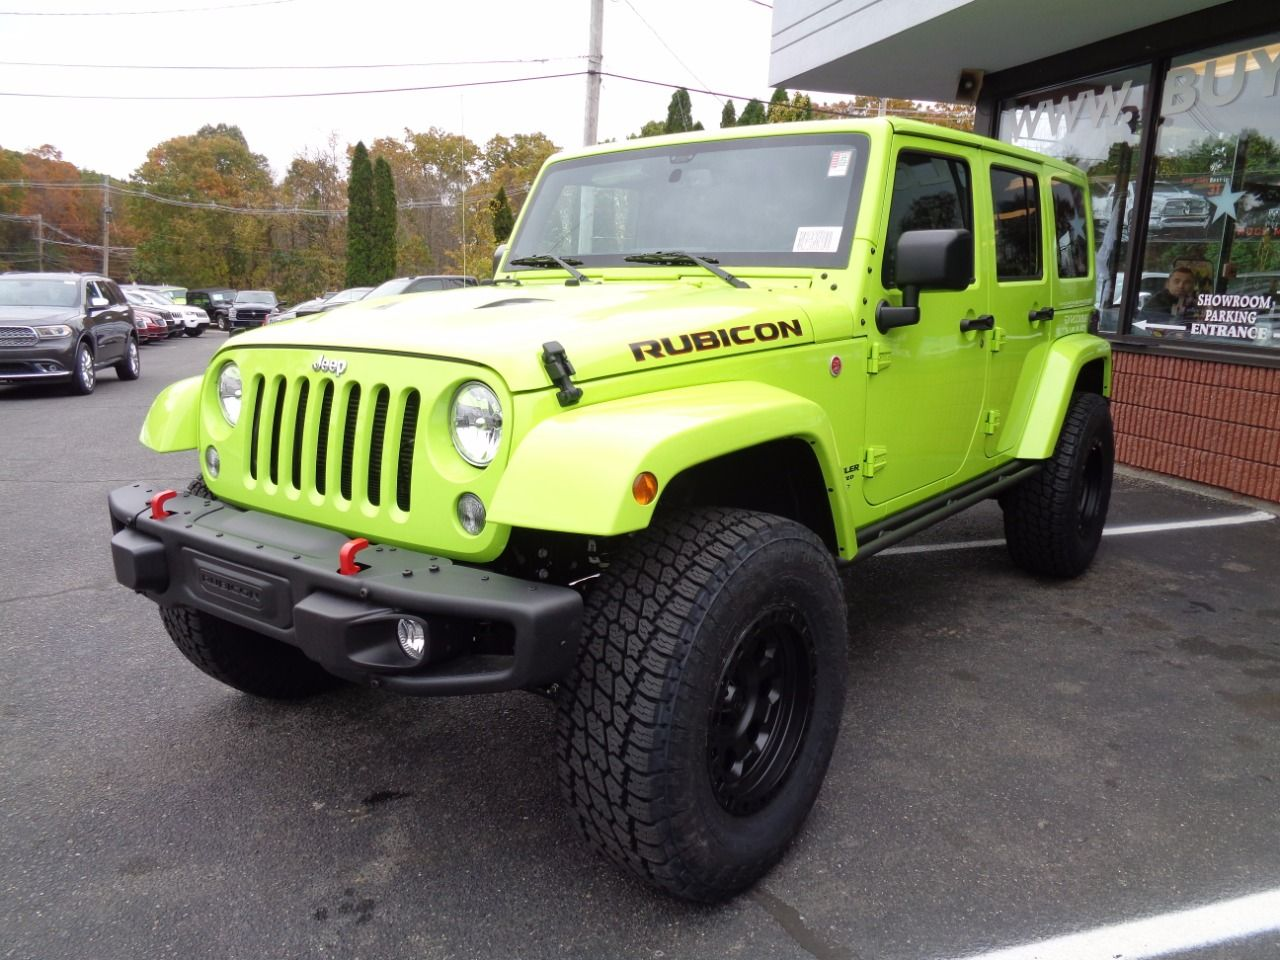 2016 Jeep Wrangler Unlimited Rubicon Hard Rock In Hypergreen